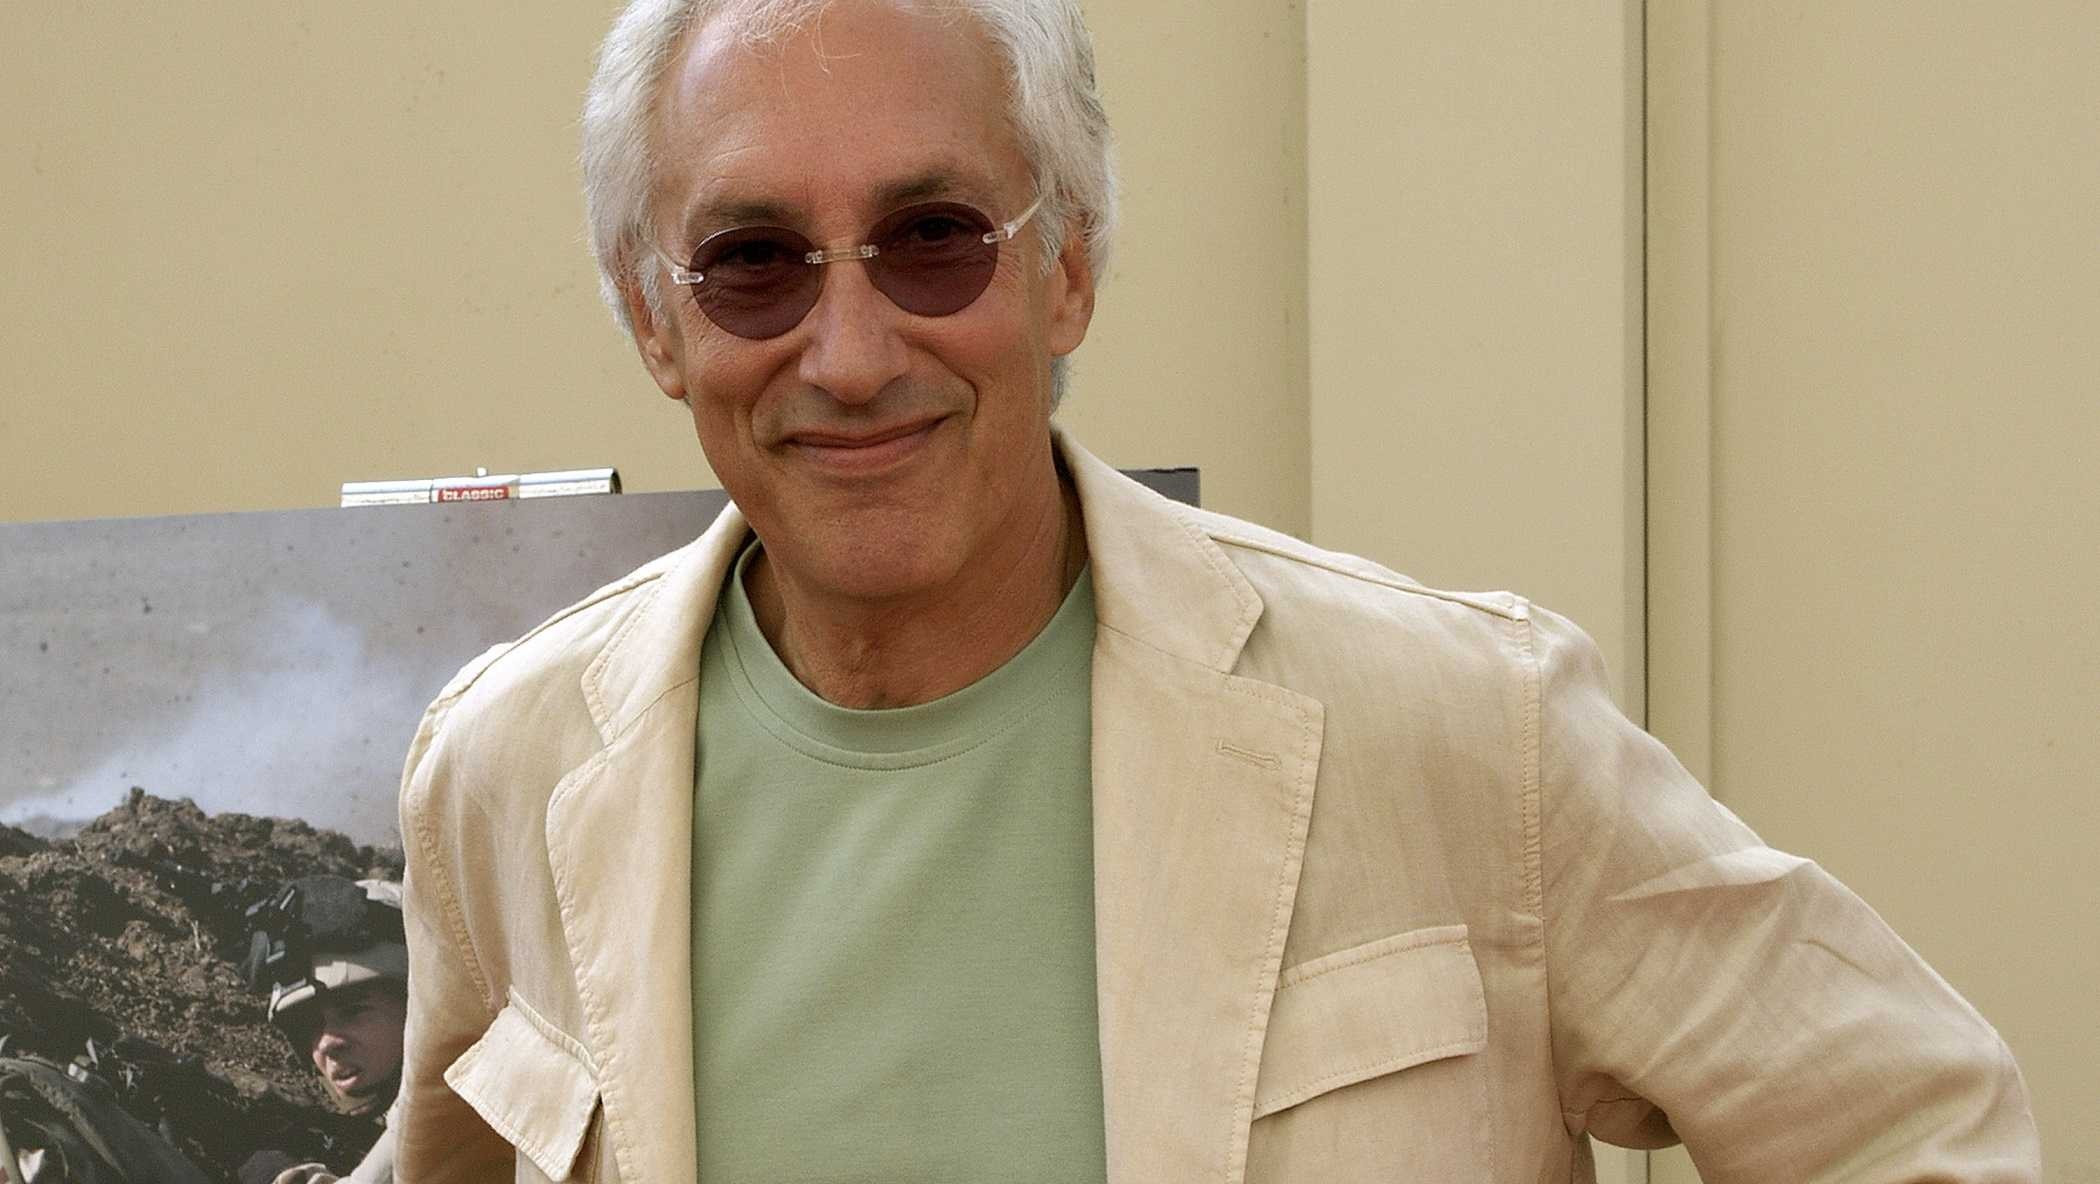 Steven Bochco during FX's 'Over There' Los Angeles Premiereat the Darryl F. Zanuck Theatre.